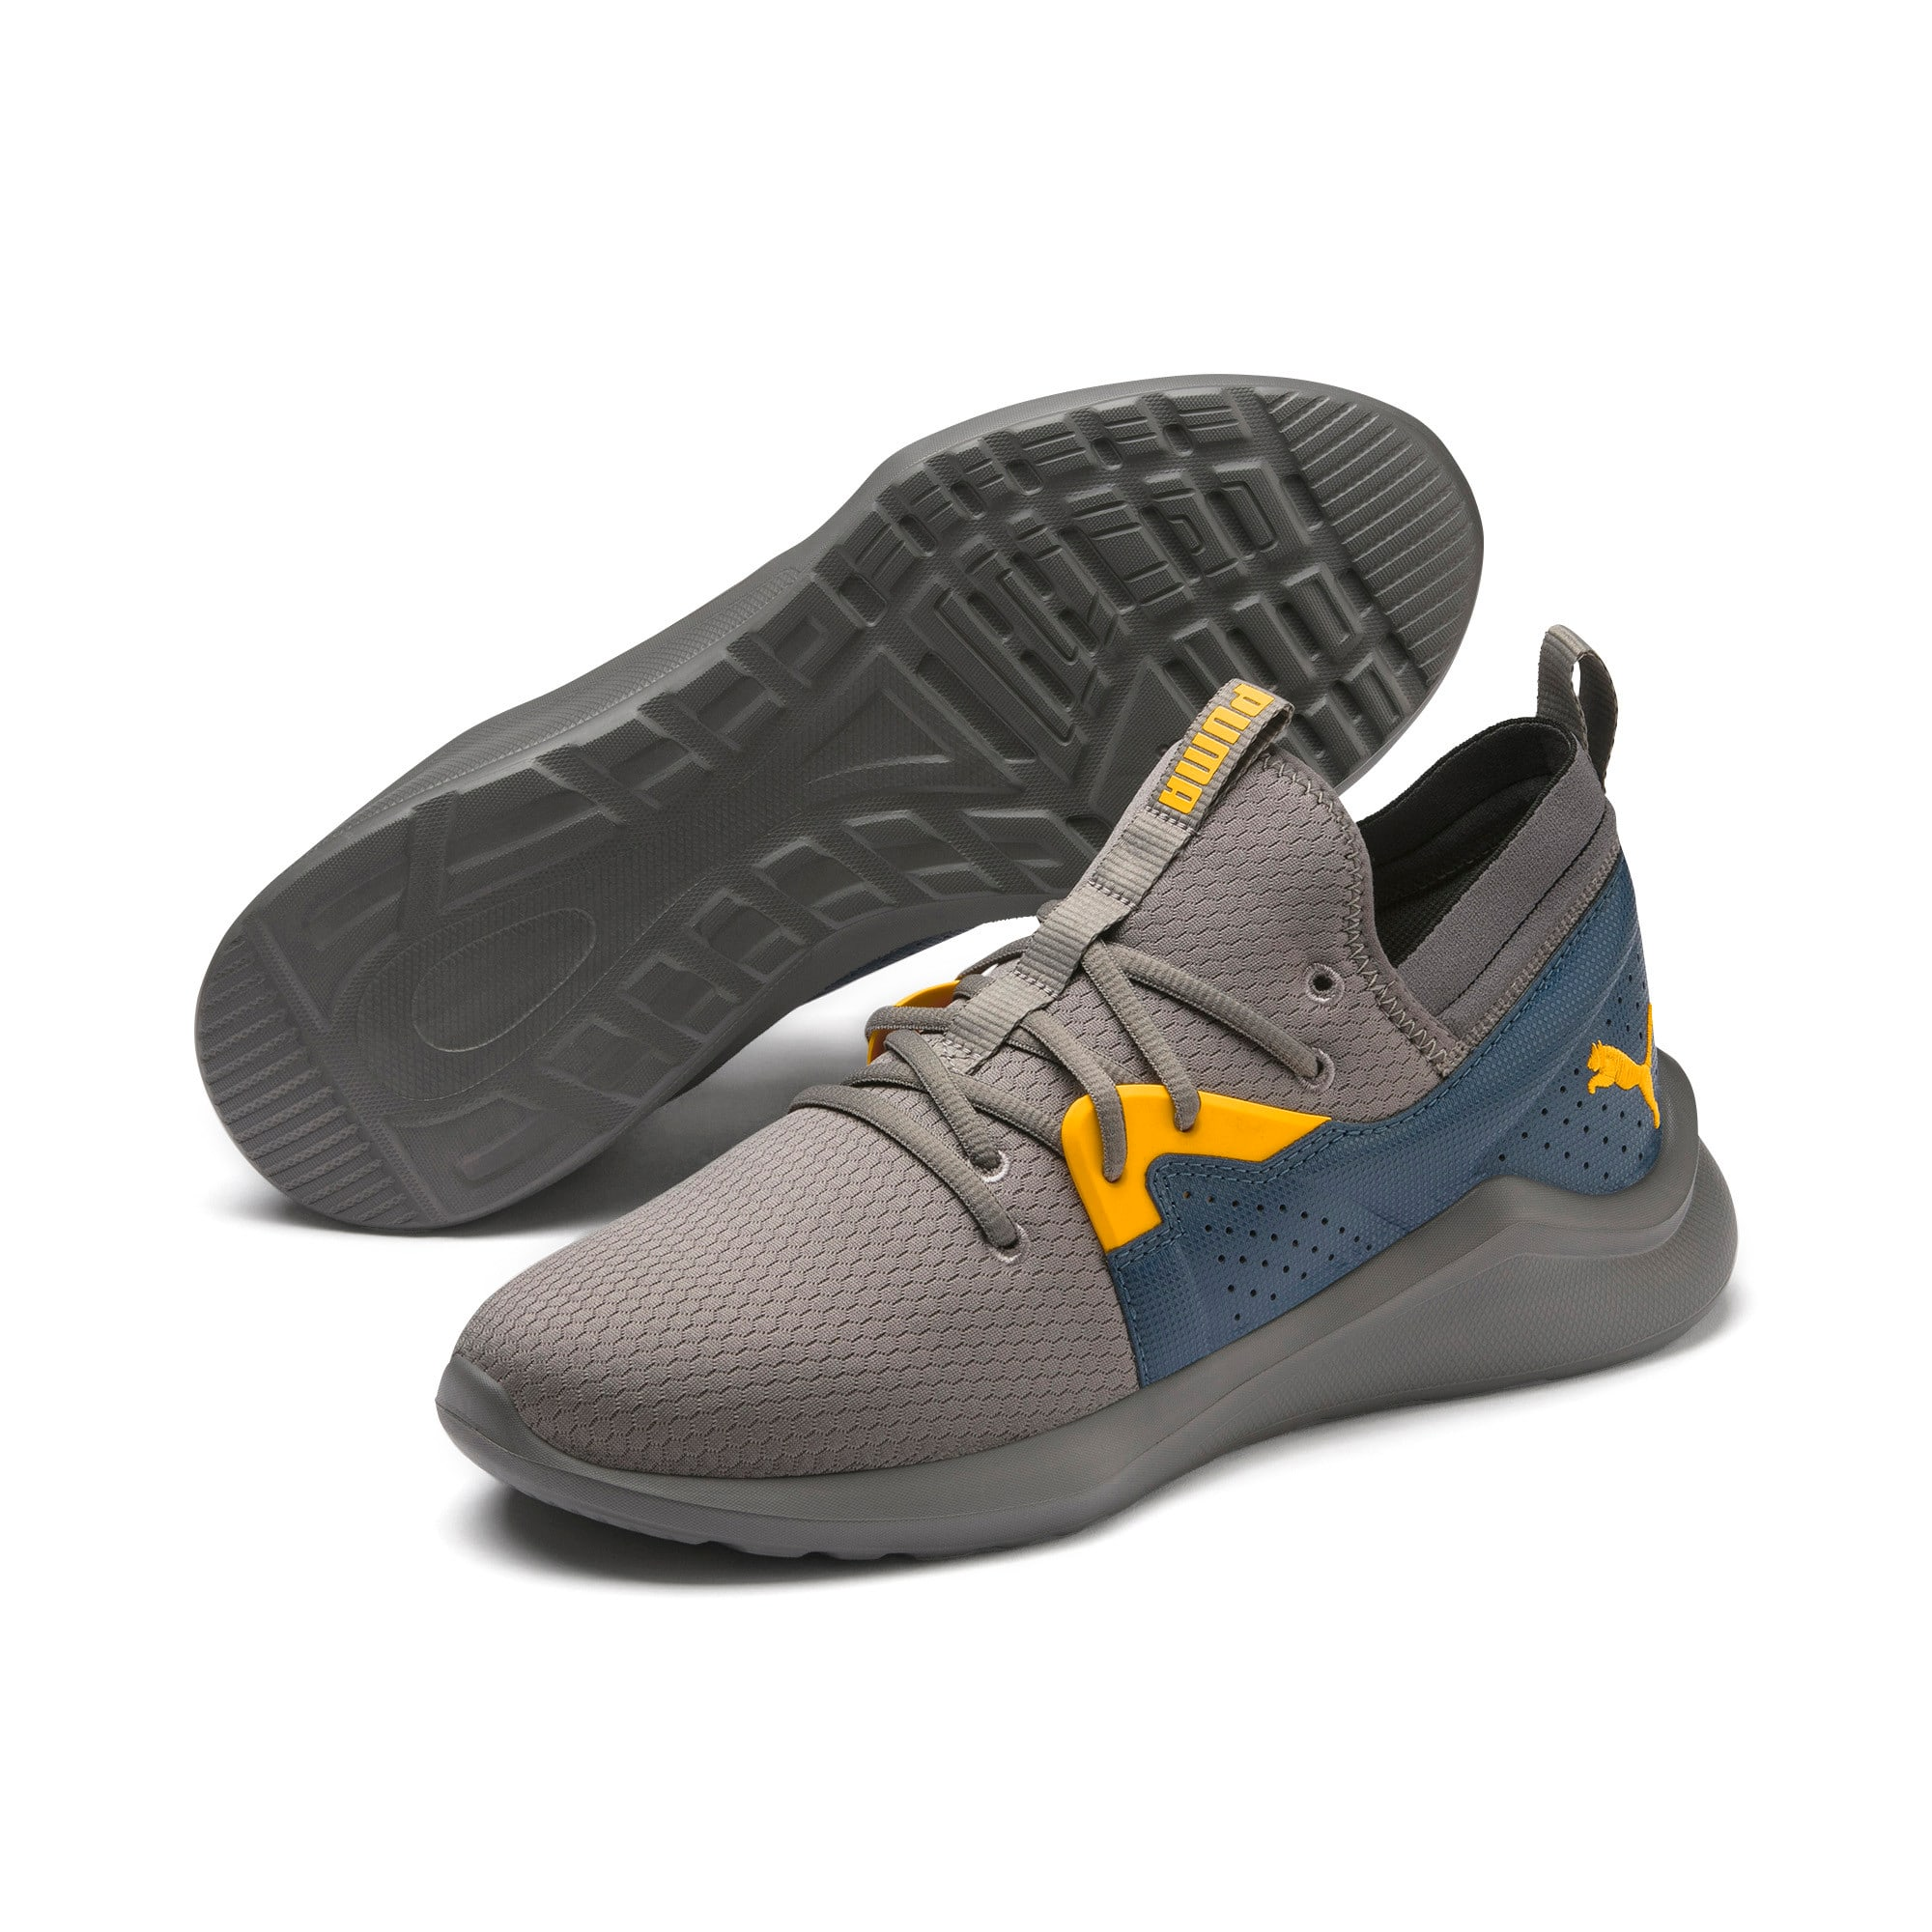 Thumbnail 2 of Emergence Hex Men's Training Shoes, CASTLEROCK-Gibral Sea-Or Alt, medium